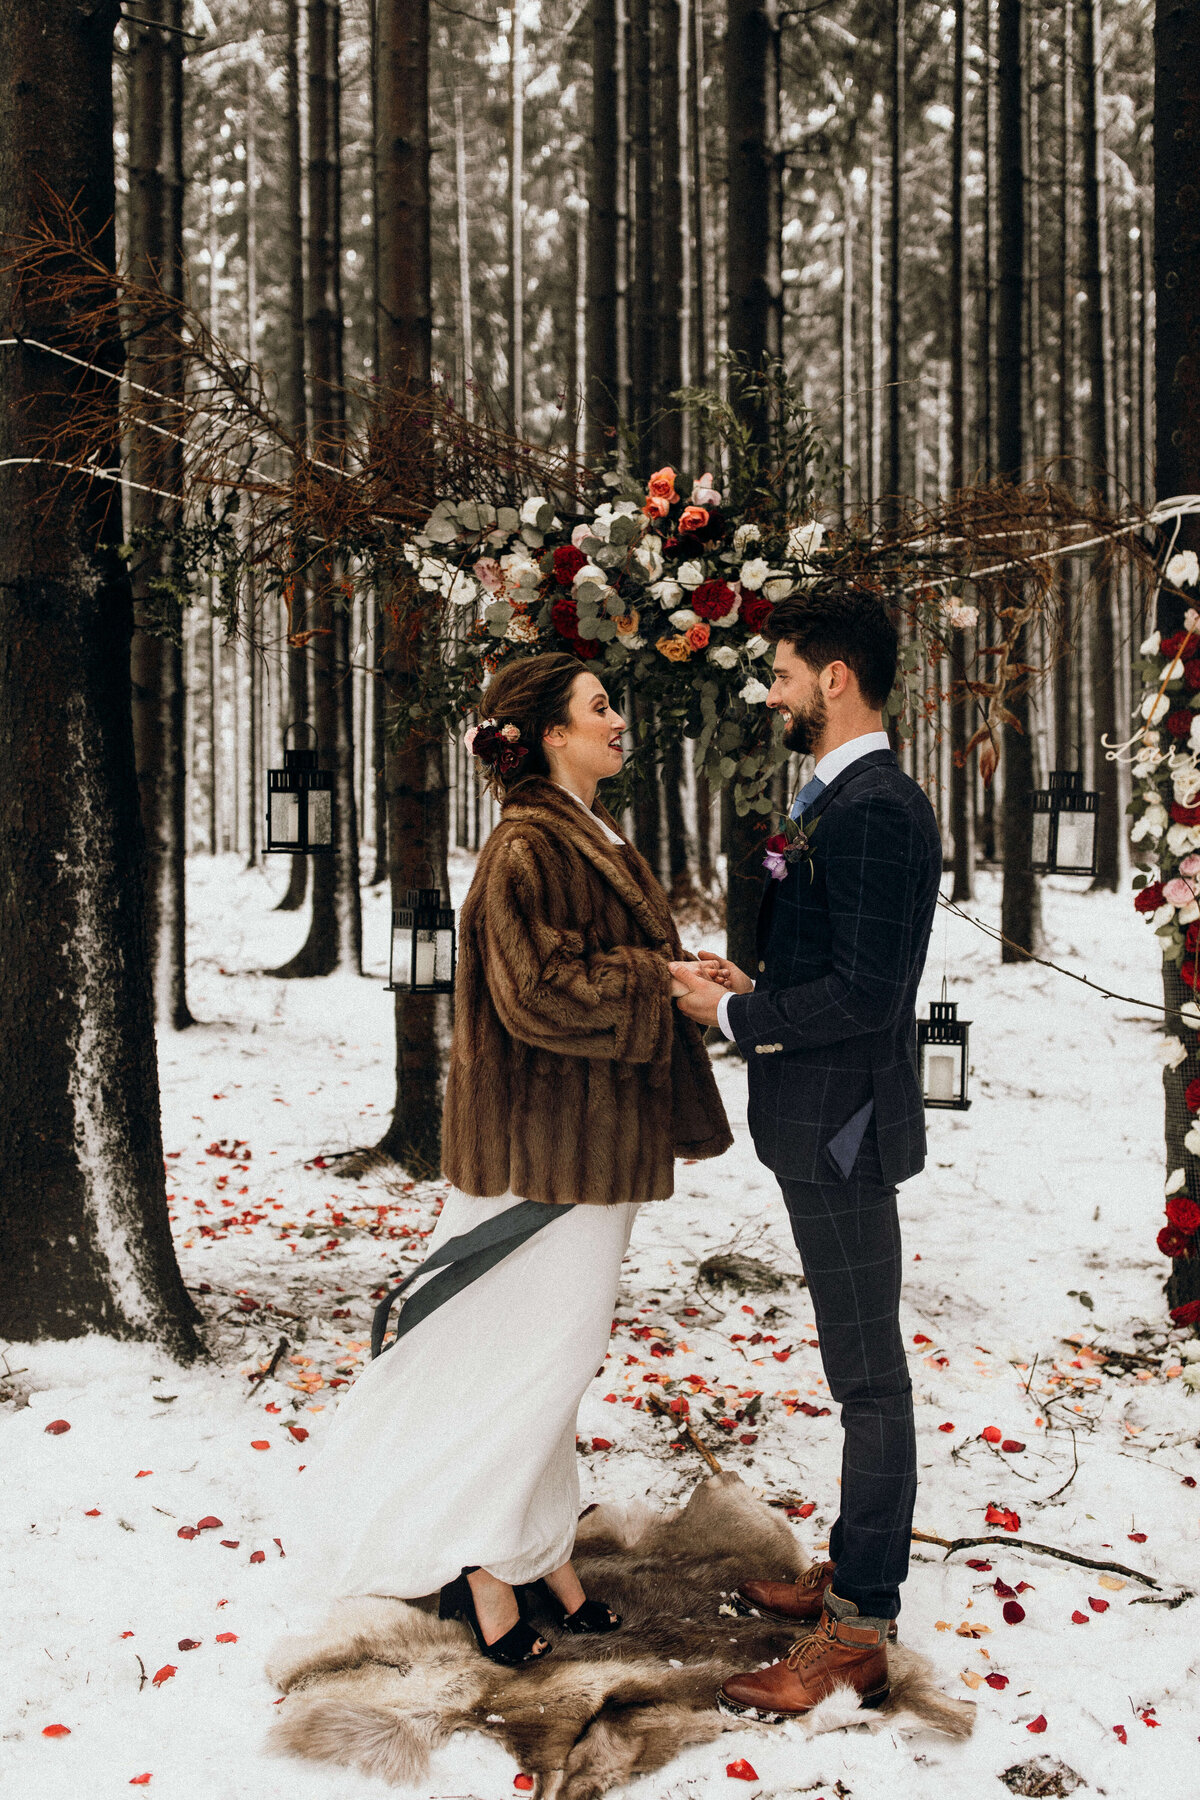 Styled Shoot - Winter Wonderland - Duitsland - 2019 3055